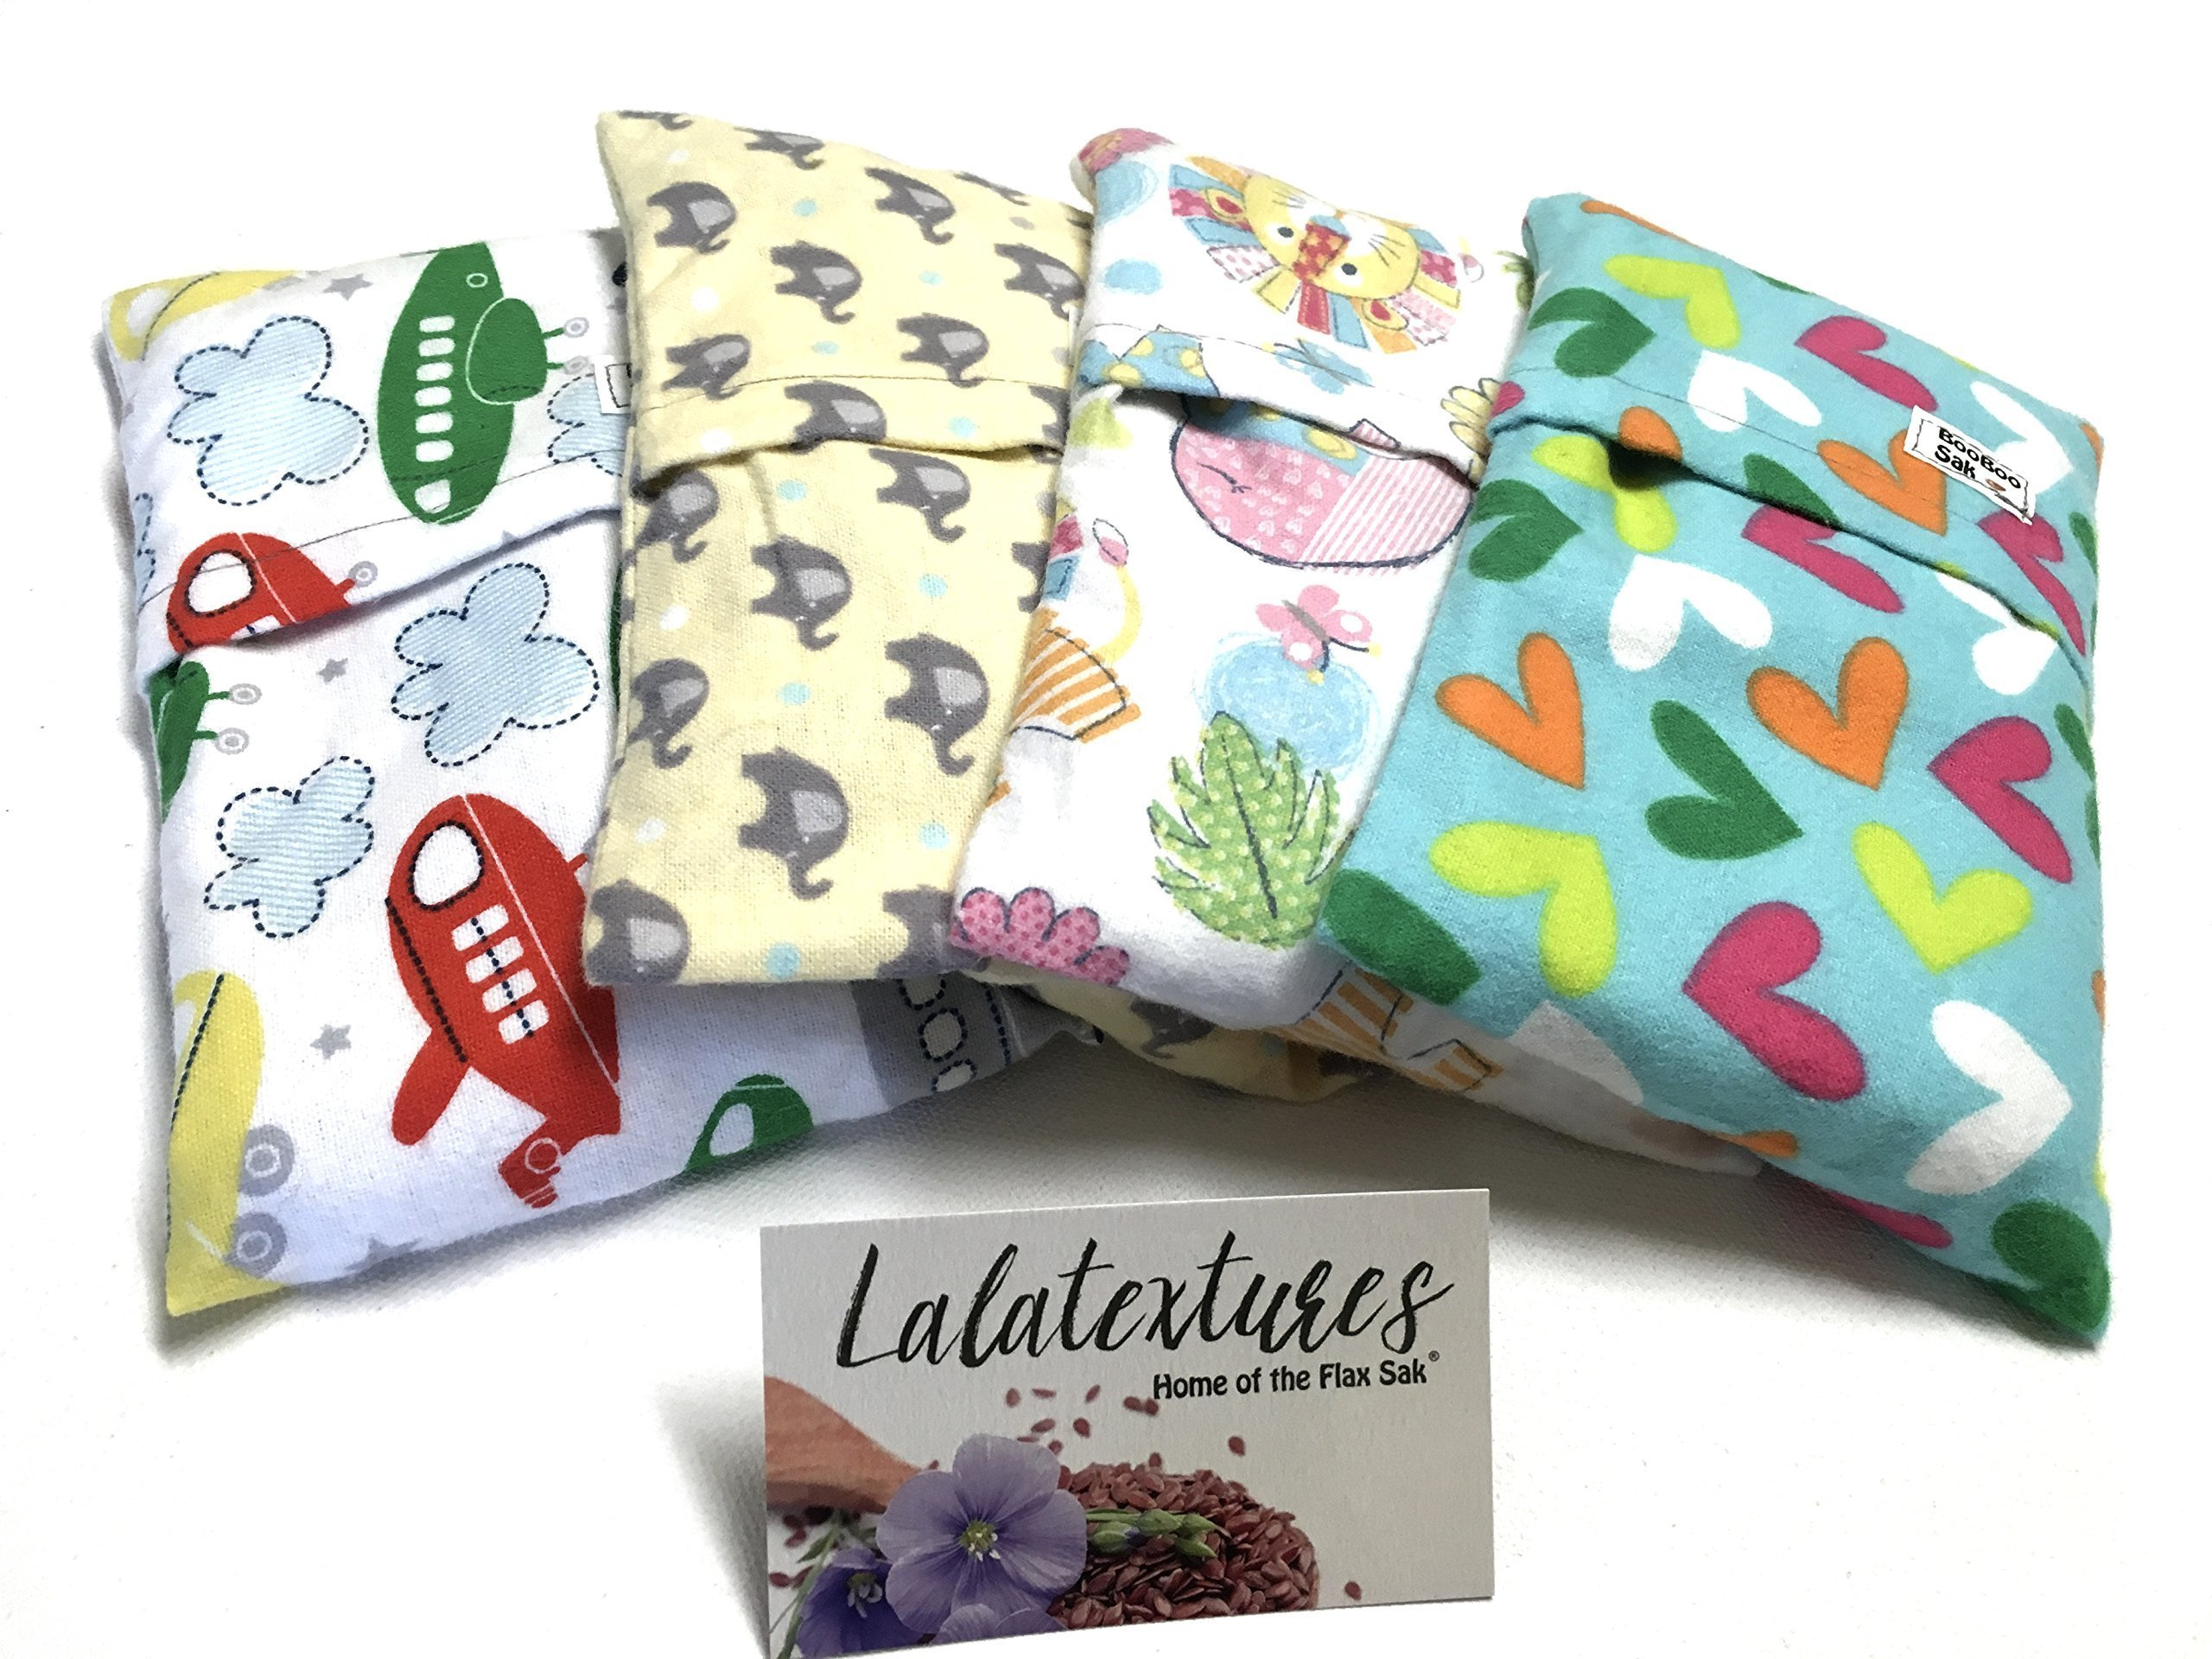 2 BooBoo Saks, Flax saks for children. Keep in the freezer and soothe their ouchies!!! Great for bedtime soothers or huggers...